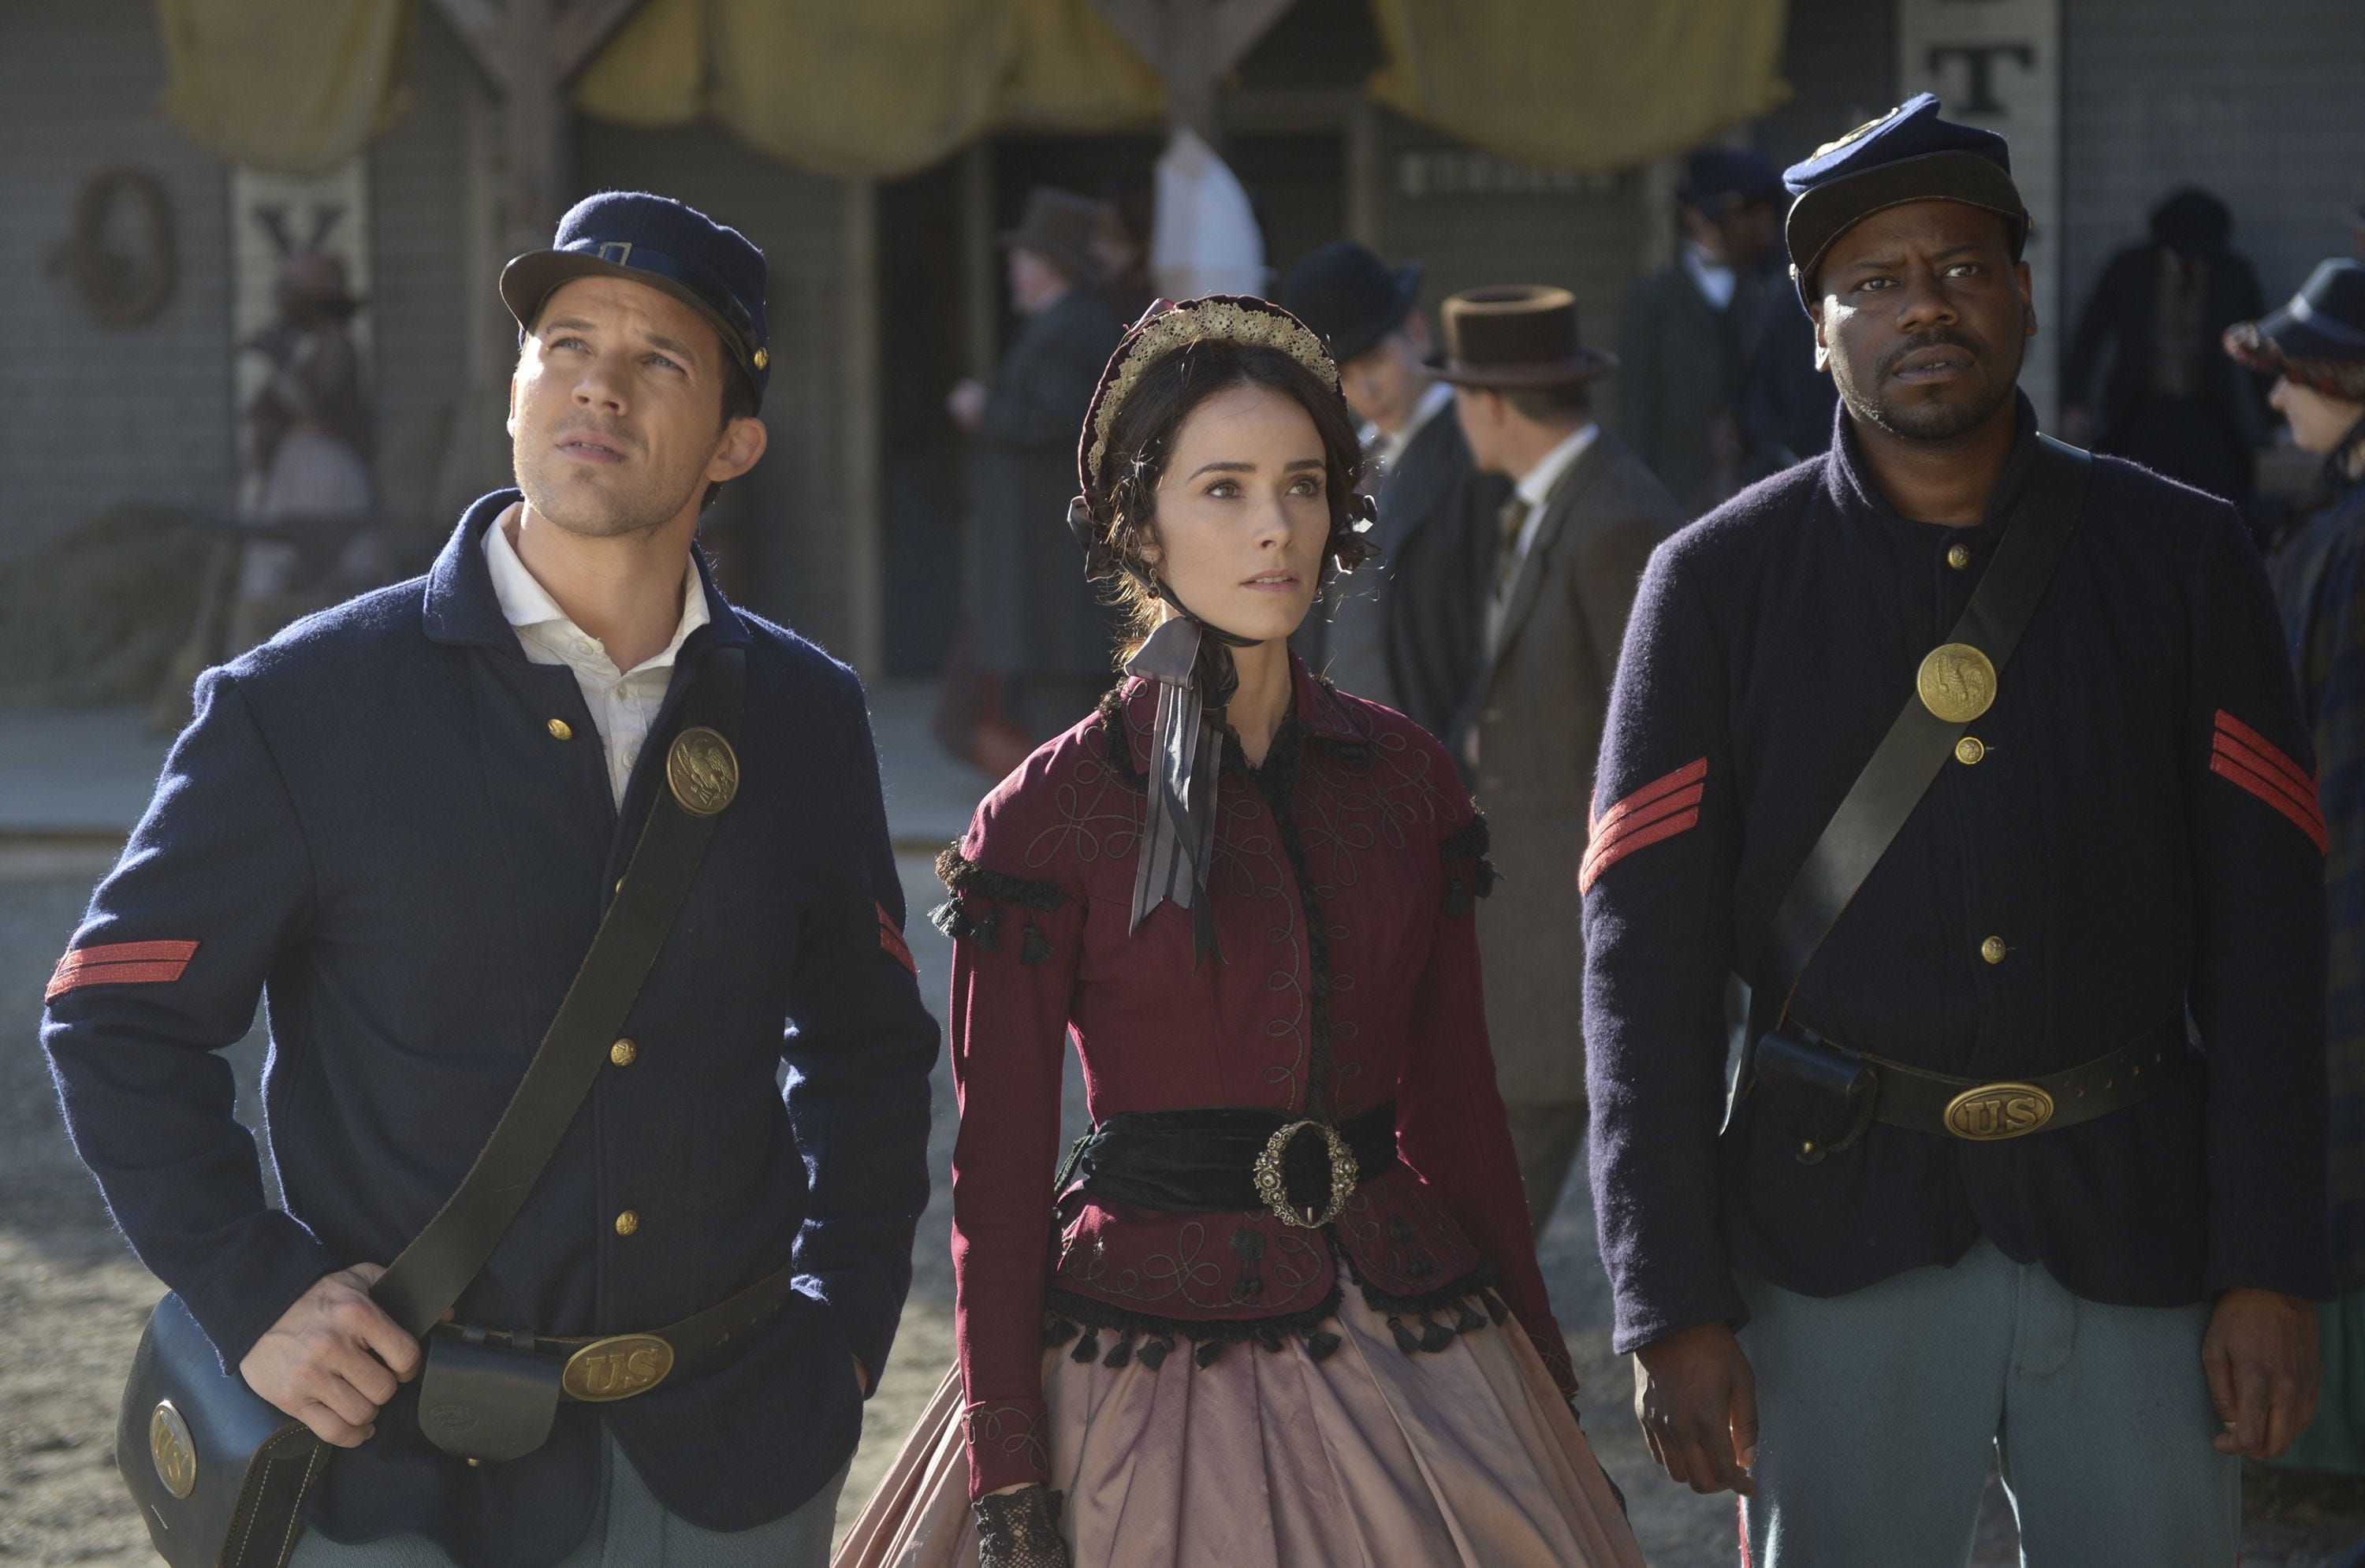 'Timeless,' 'Elementary' fans want more seasons, says Save Our Shows poll